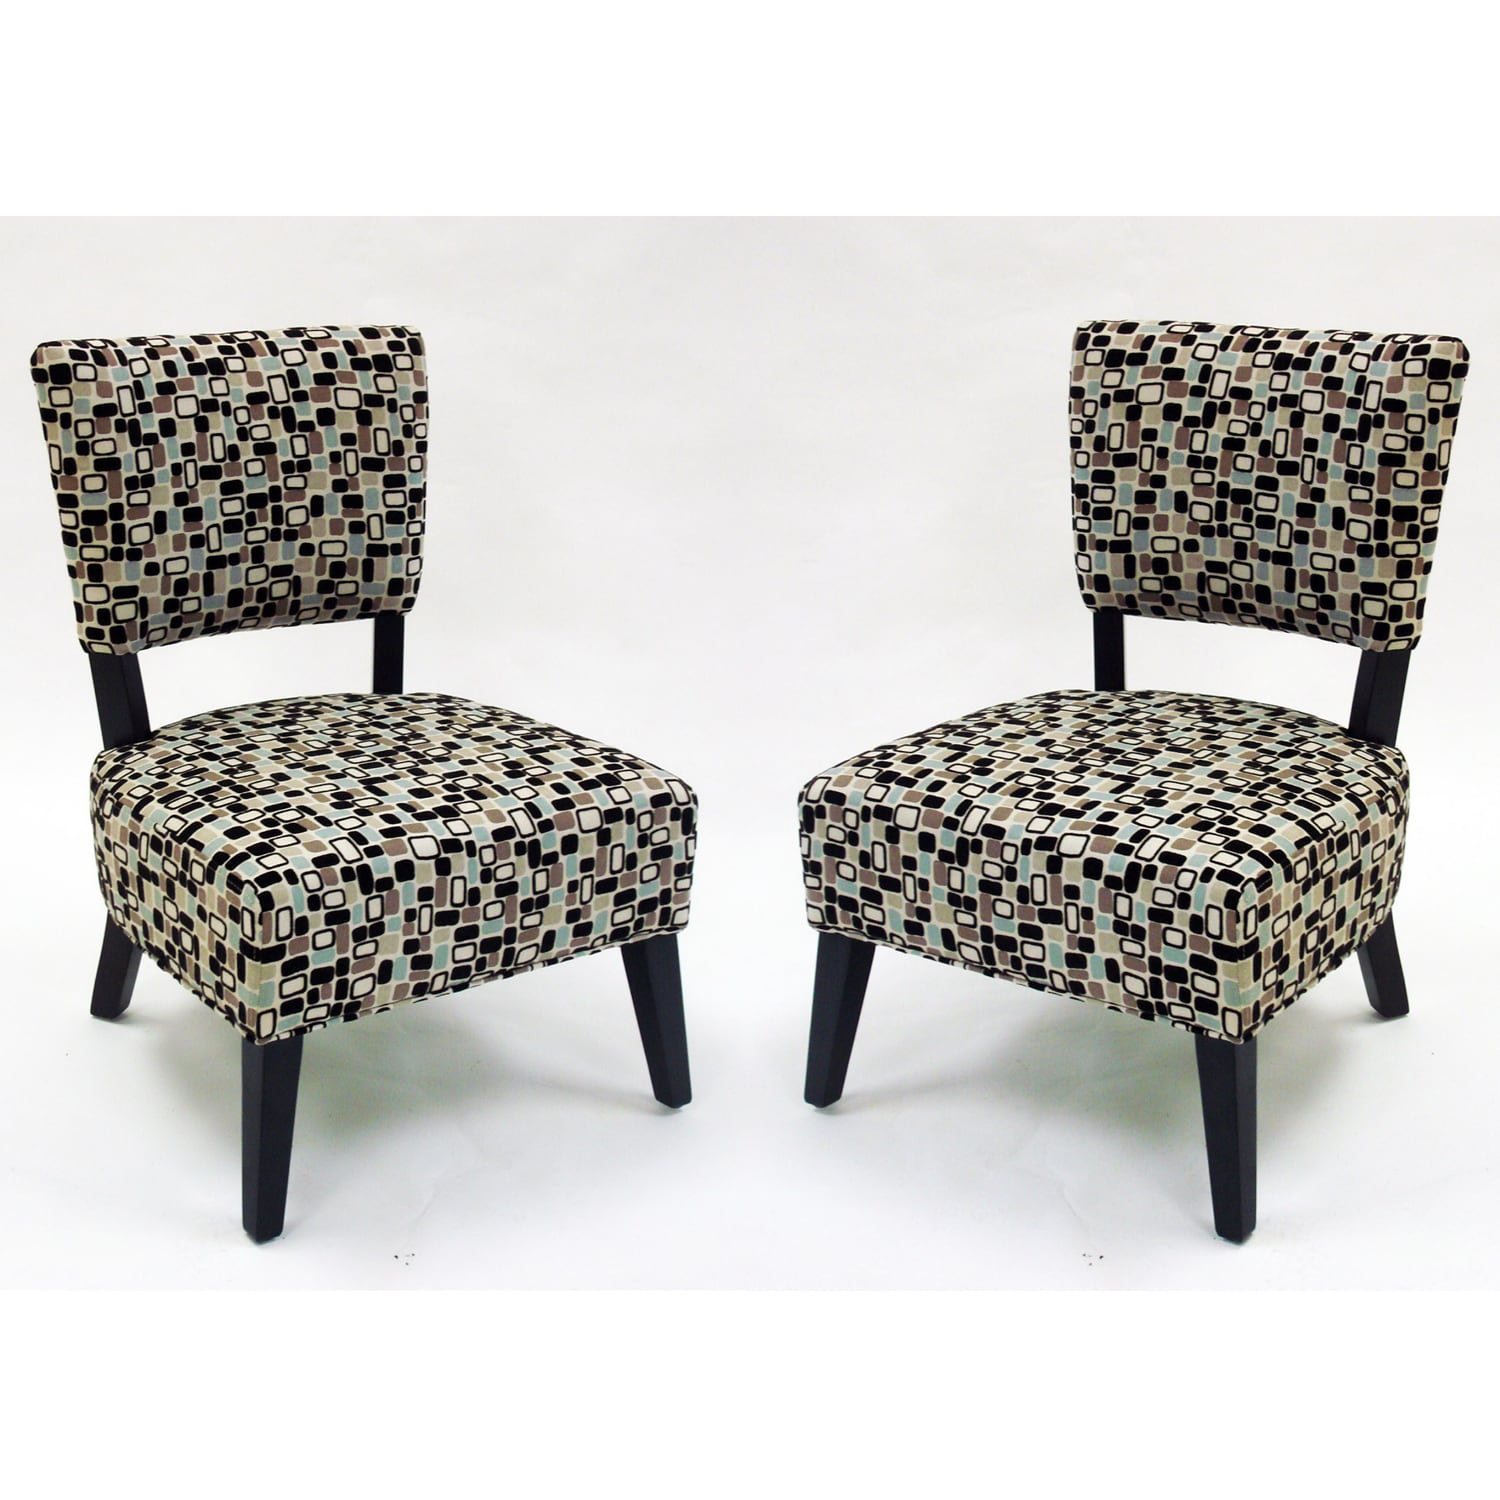 overstock com chairs u shaped chair glides geometric fabric modern accent set of 2 free